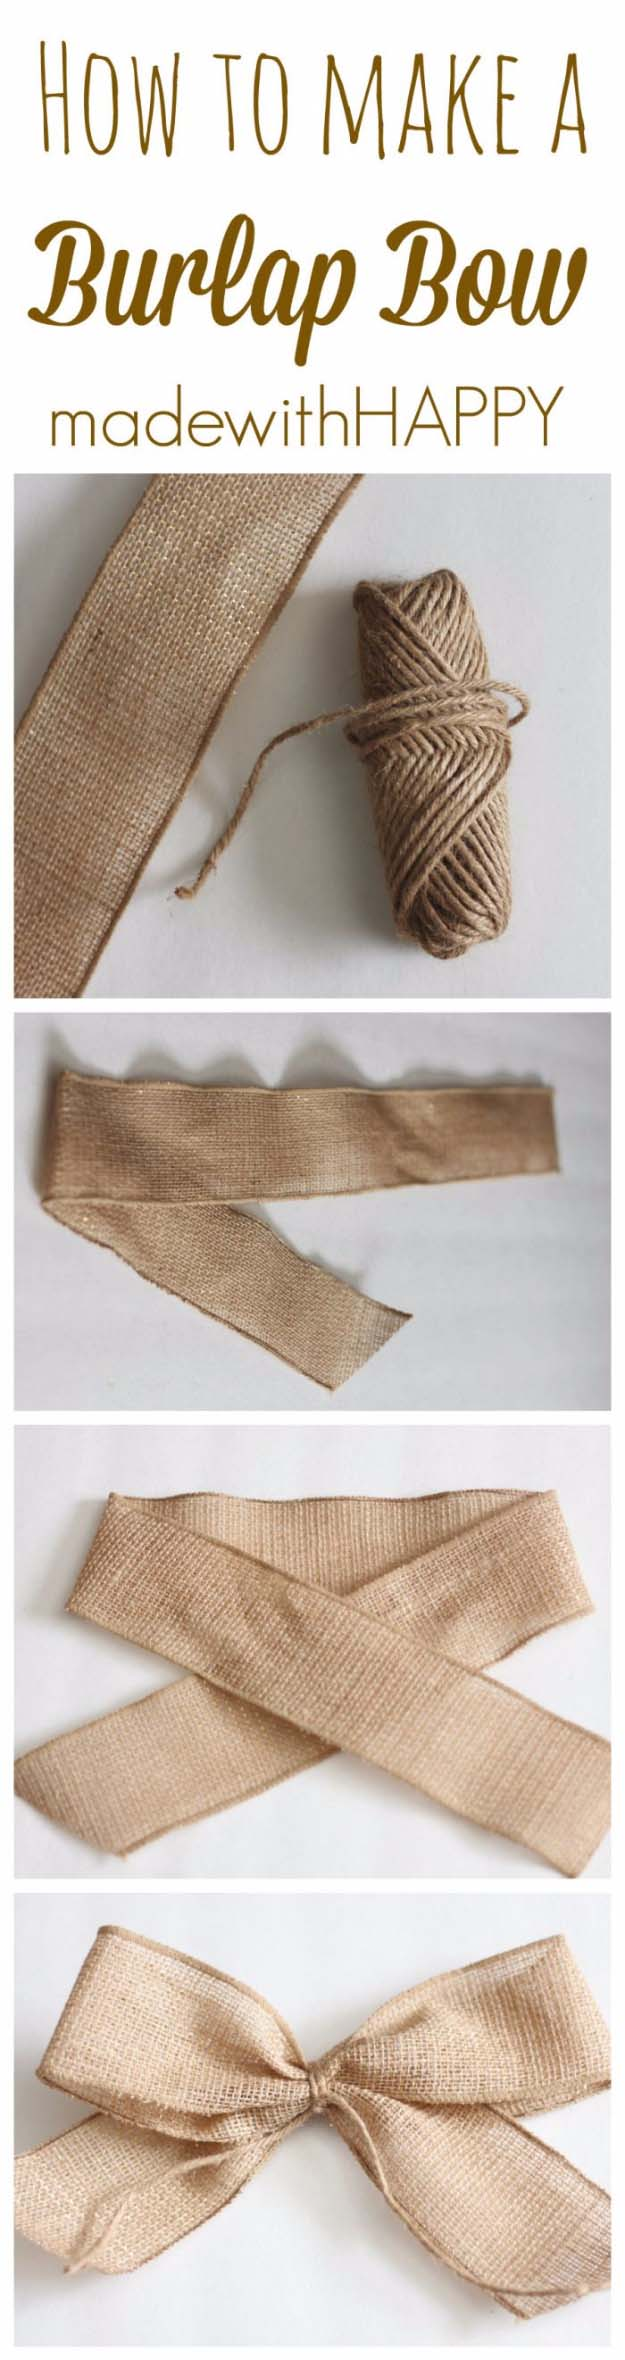 Awesome DIY Christmas Home Decorations and Homemade Holiday Decor Ideas - Quick and Easy Decorating ideas, cool ornaments, home decor crafts and fun Christmas stuff | Crafts and DIY projects by DIY Joy | How to Make a Fast Burlap Bow for Holiday Decorations #diy #crafts #christmas